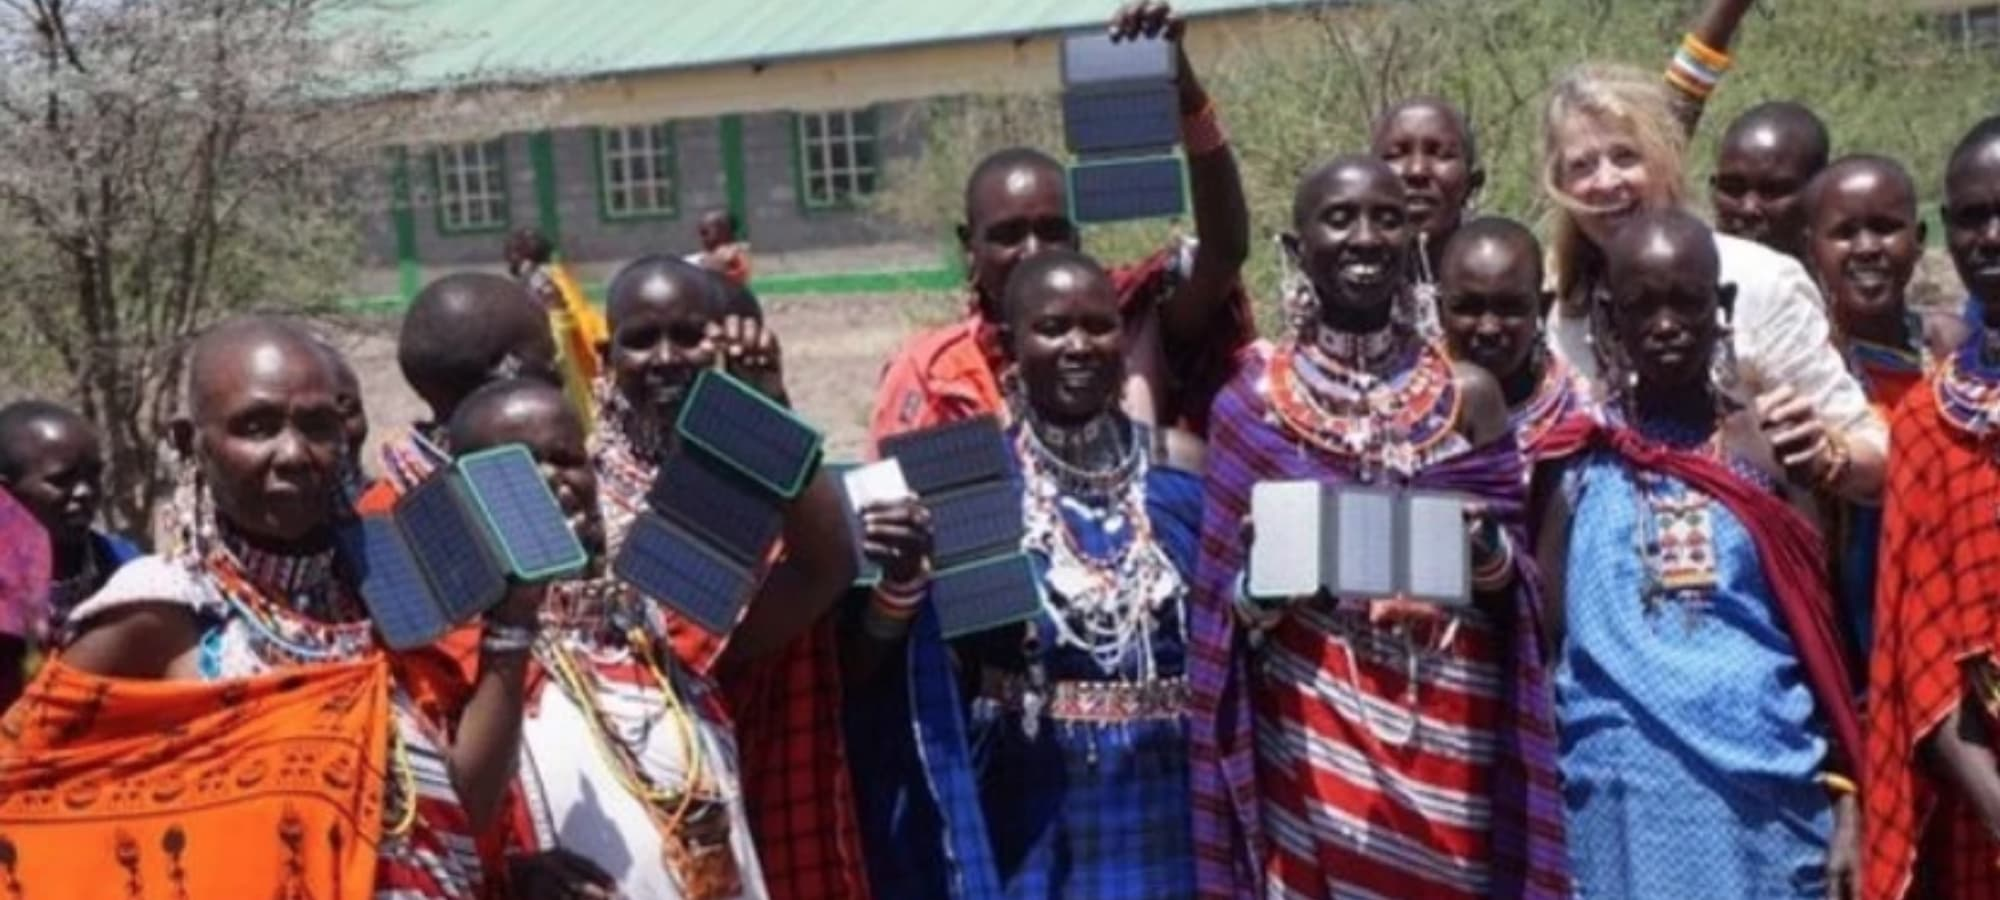 Unite to Light employee presenting solar lights to a group of African women